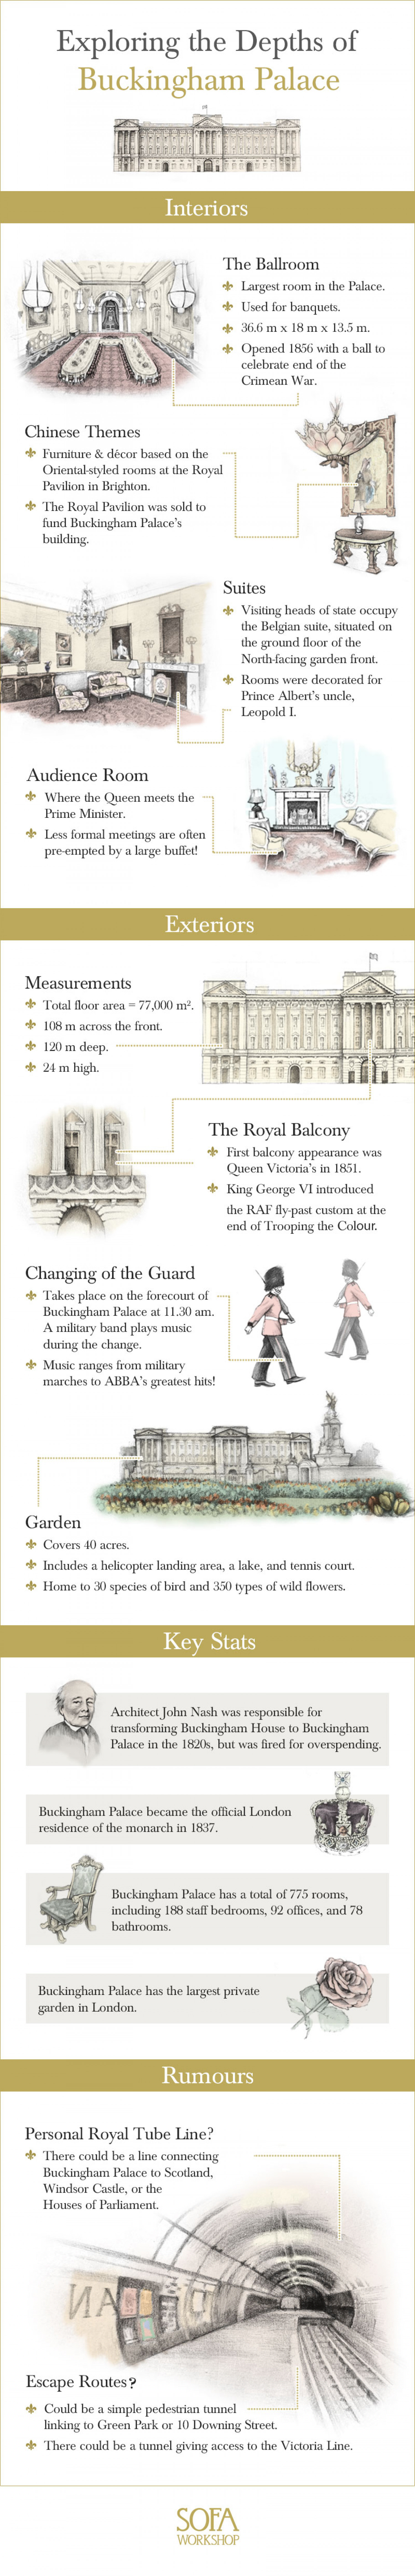 Exploring the Depths of Buckingham Palace Infographic